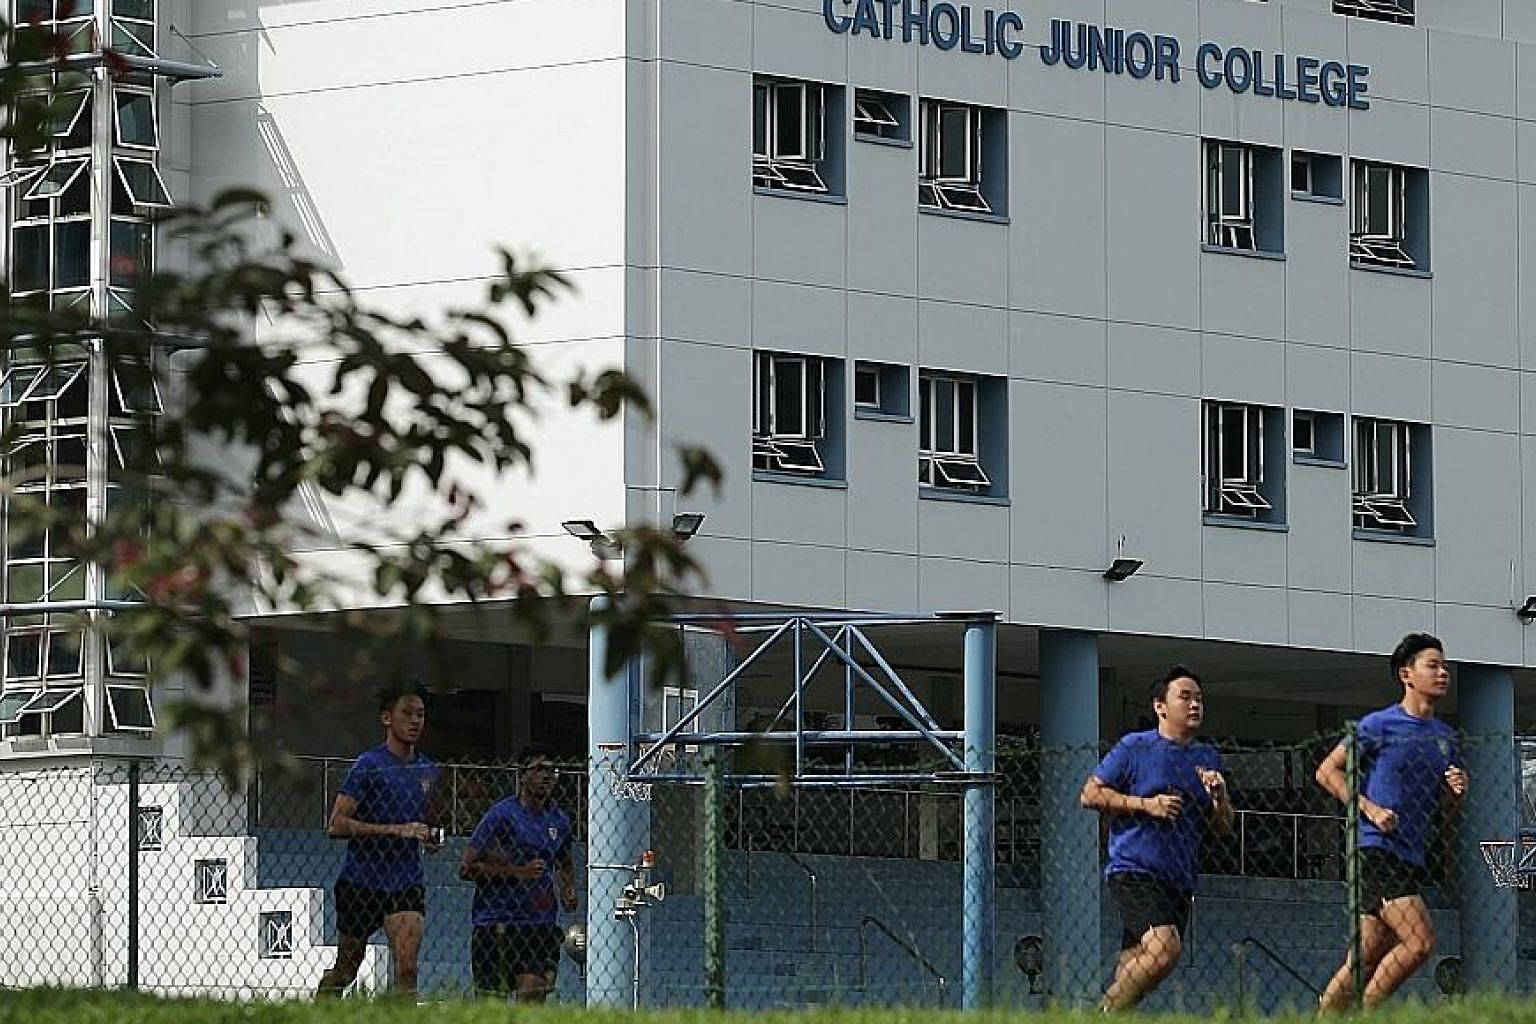 A CJC vice-principal lashed out after some 150 students were absent from school, claiming that CJC is unlike a neighbourhood secondary school where she claimed most students have family issues.